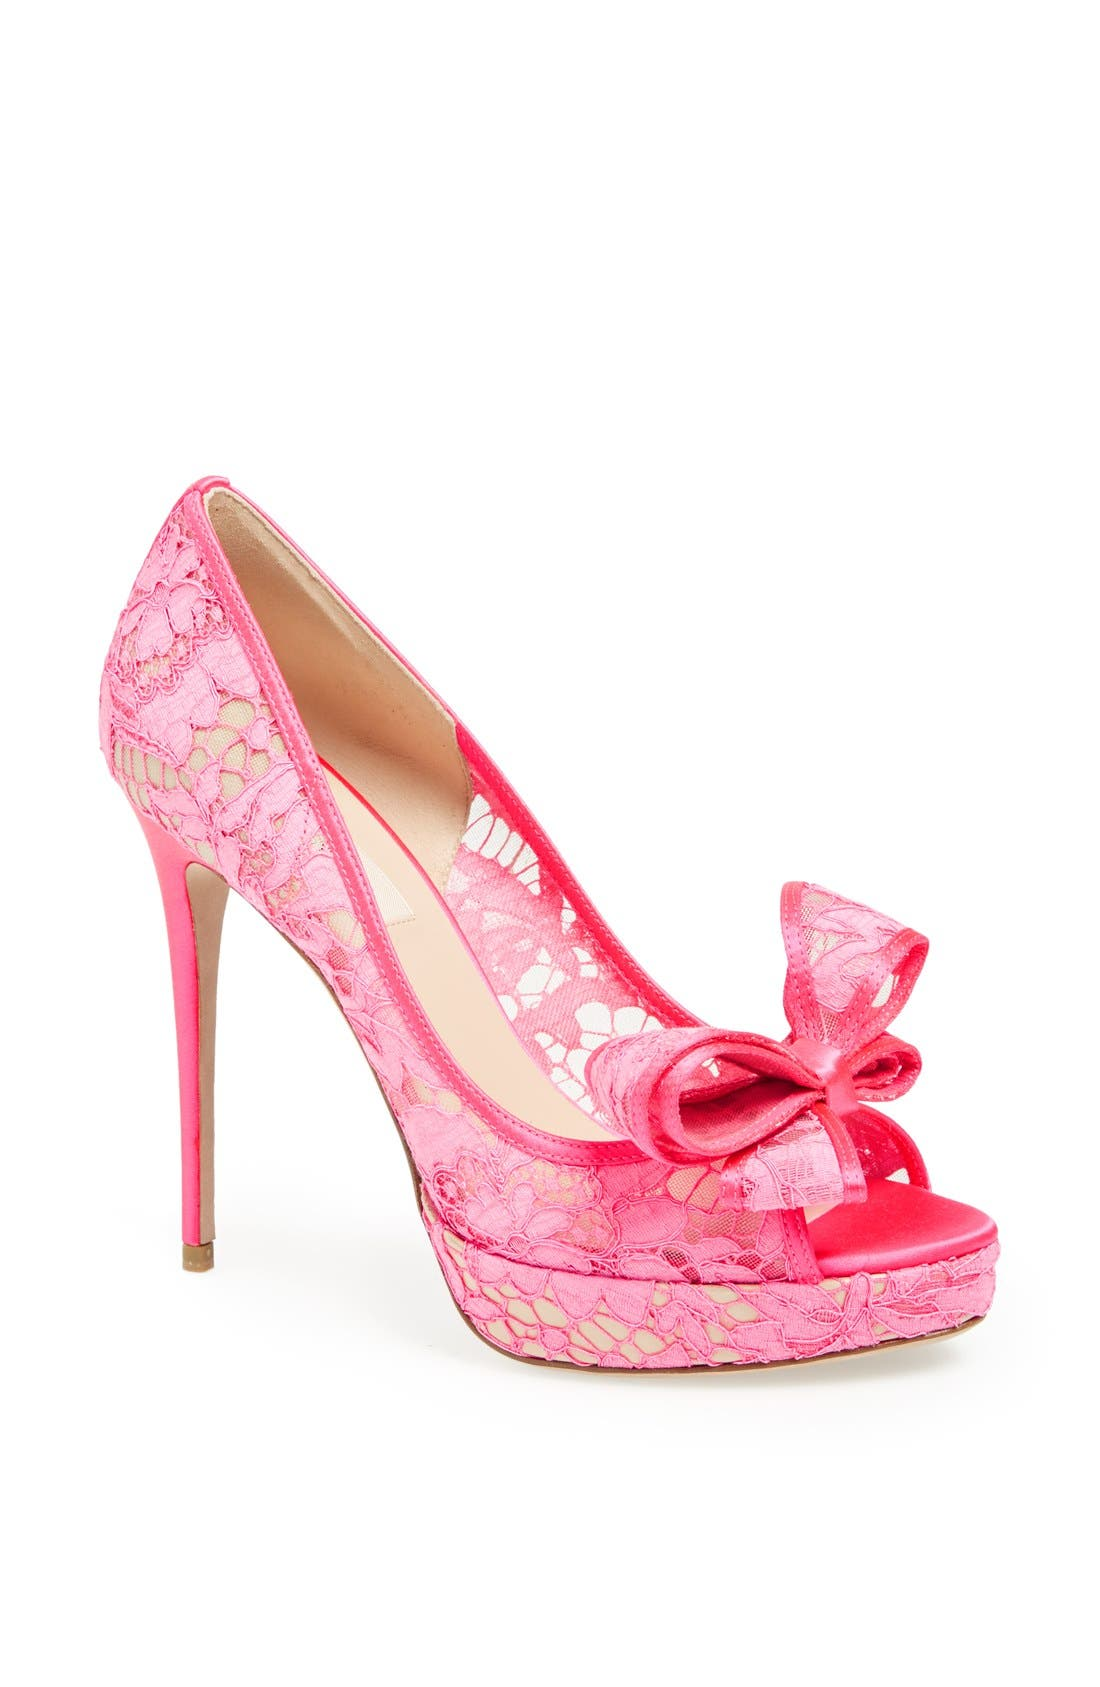 'Lace Couture Bow' Open Toe Pump,                         Main,                         color, 651